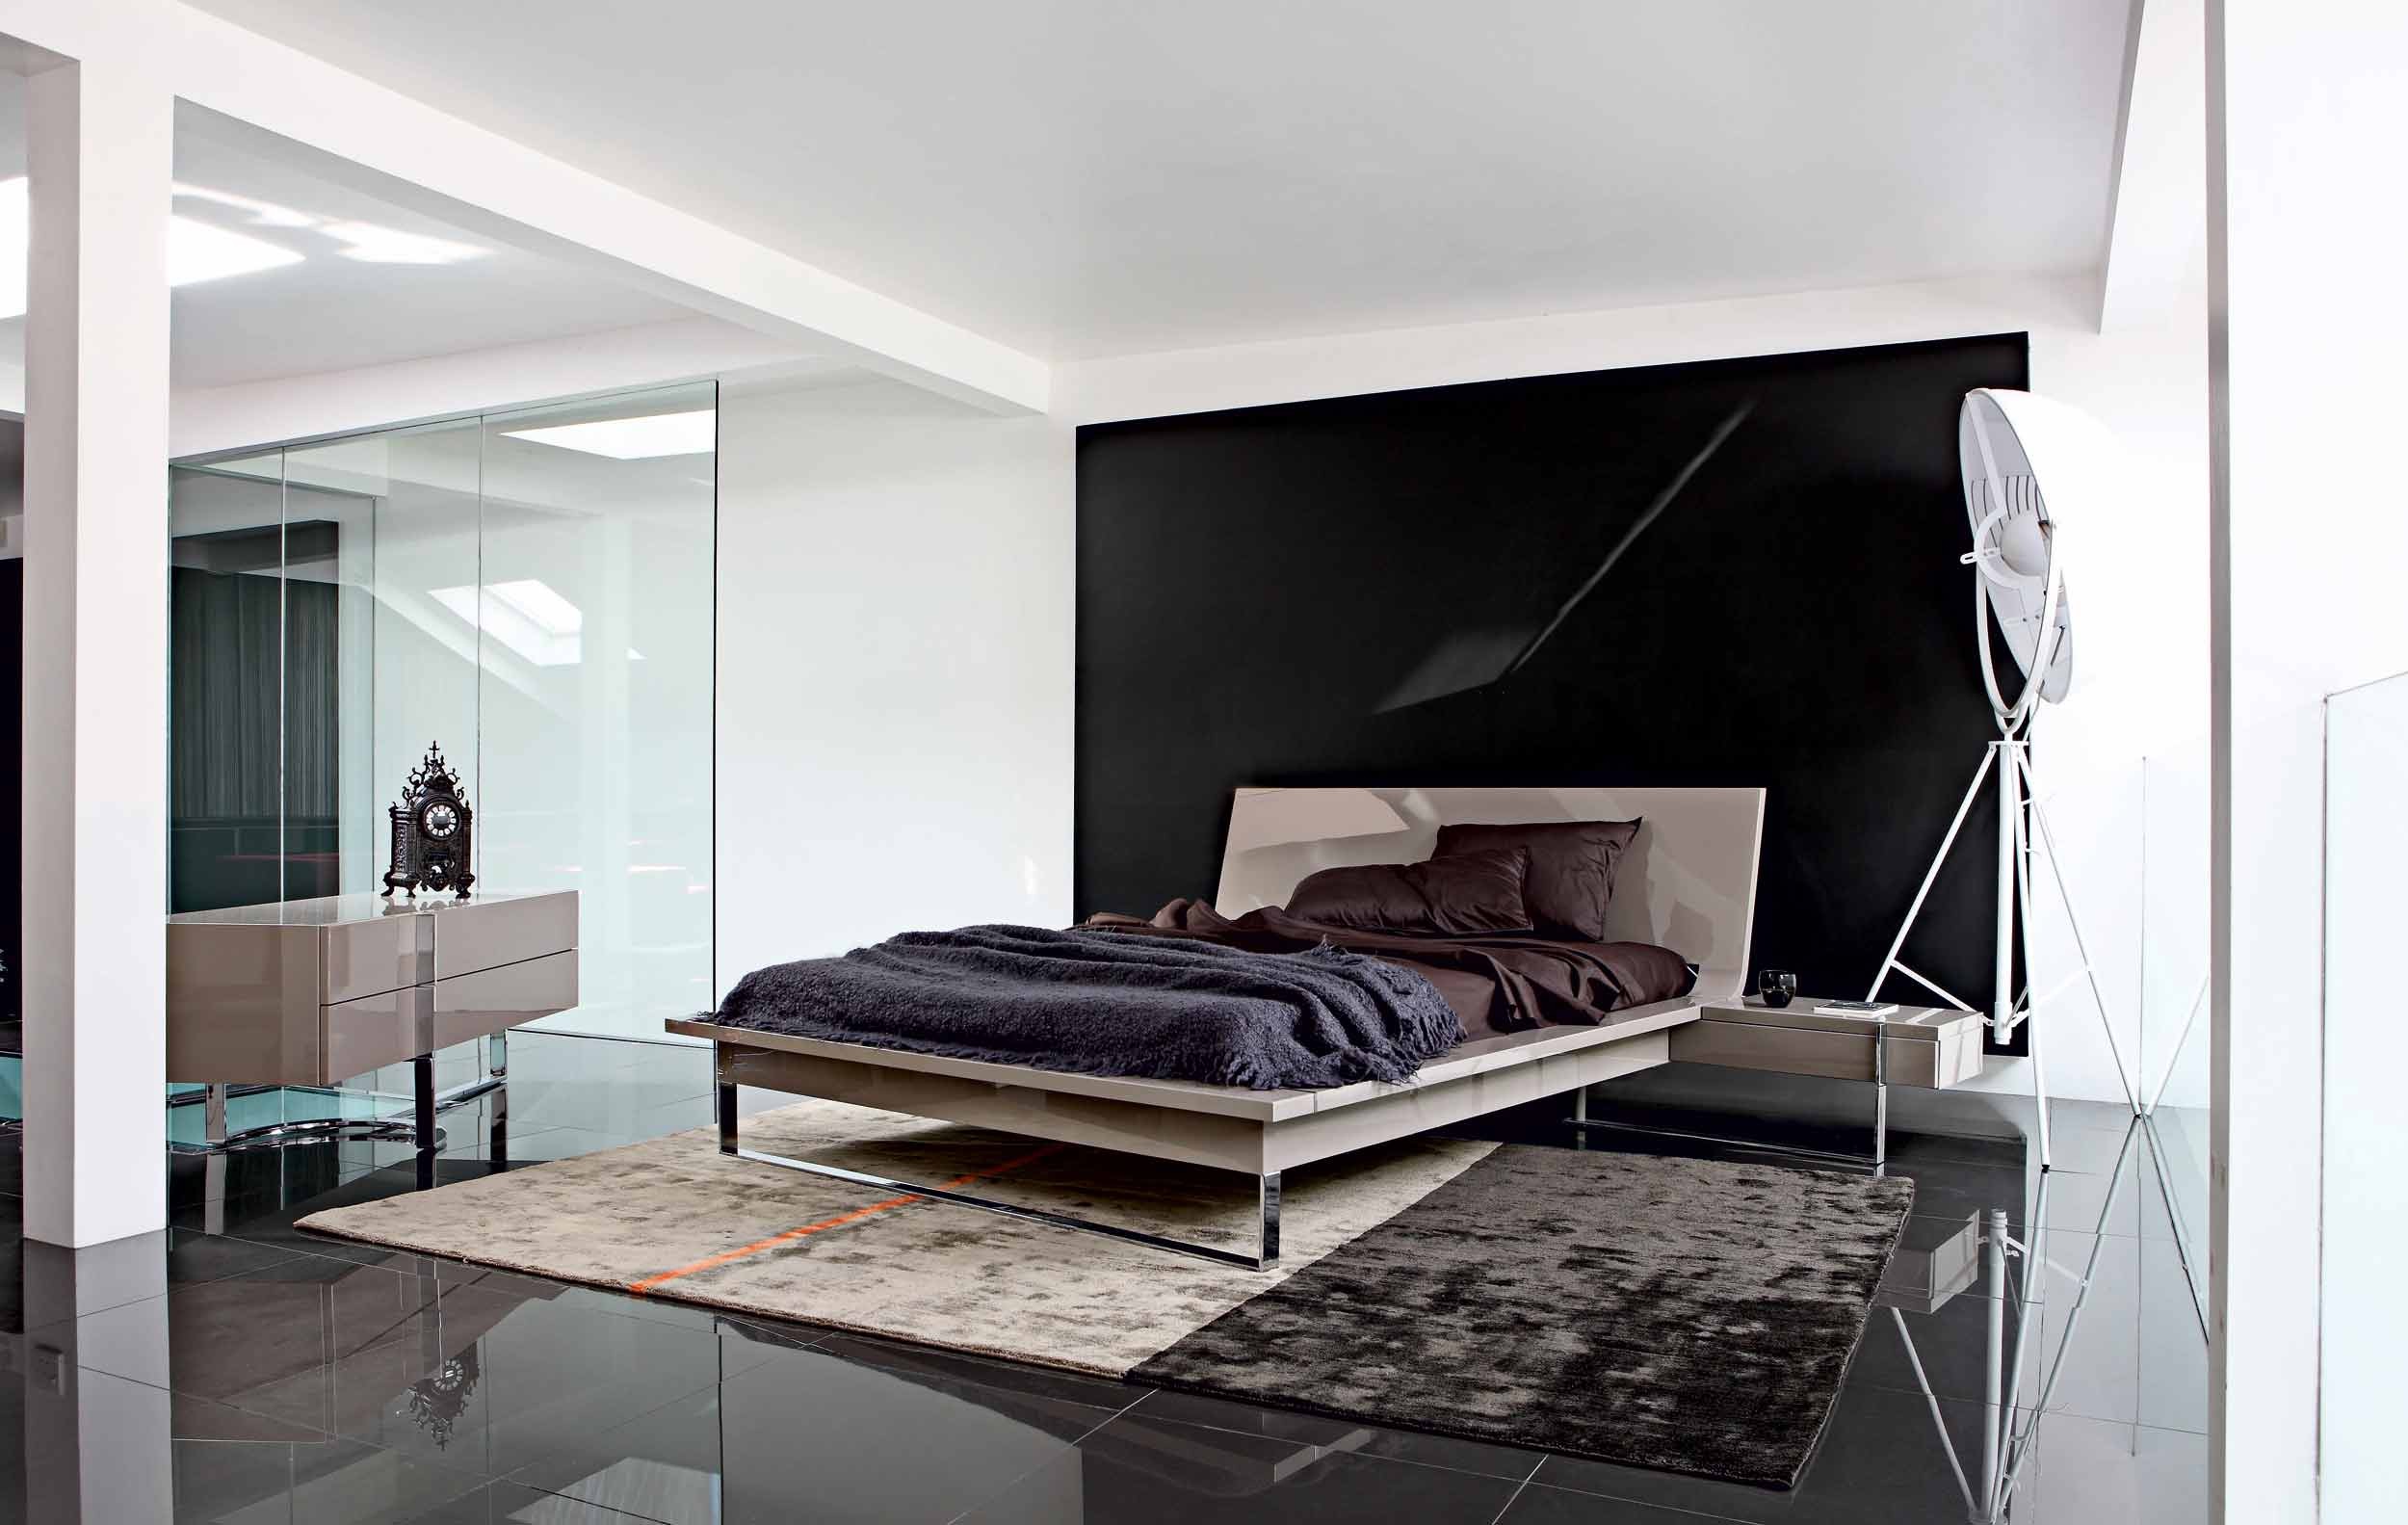 Minimalist bedroom interior design ideas for Minimalist room ideas